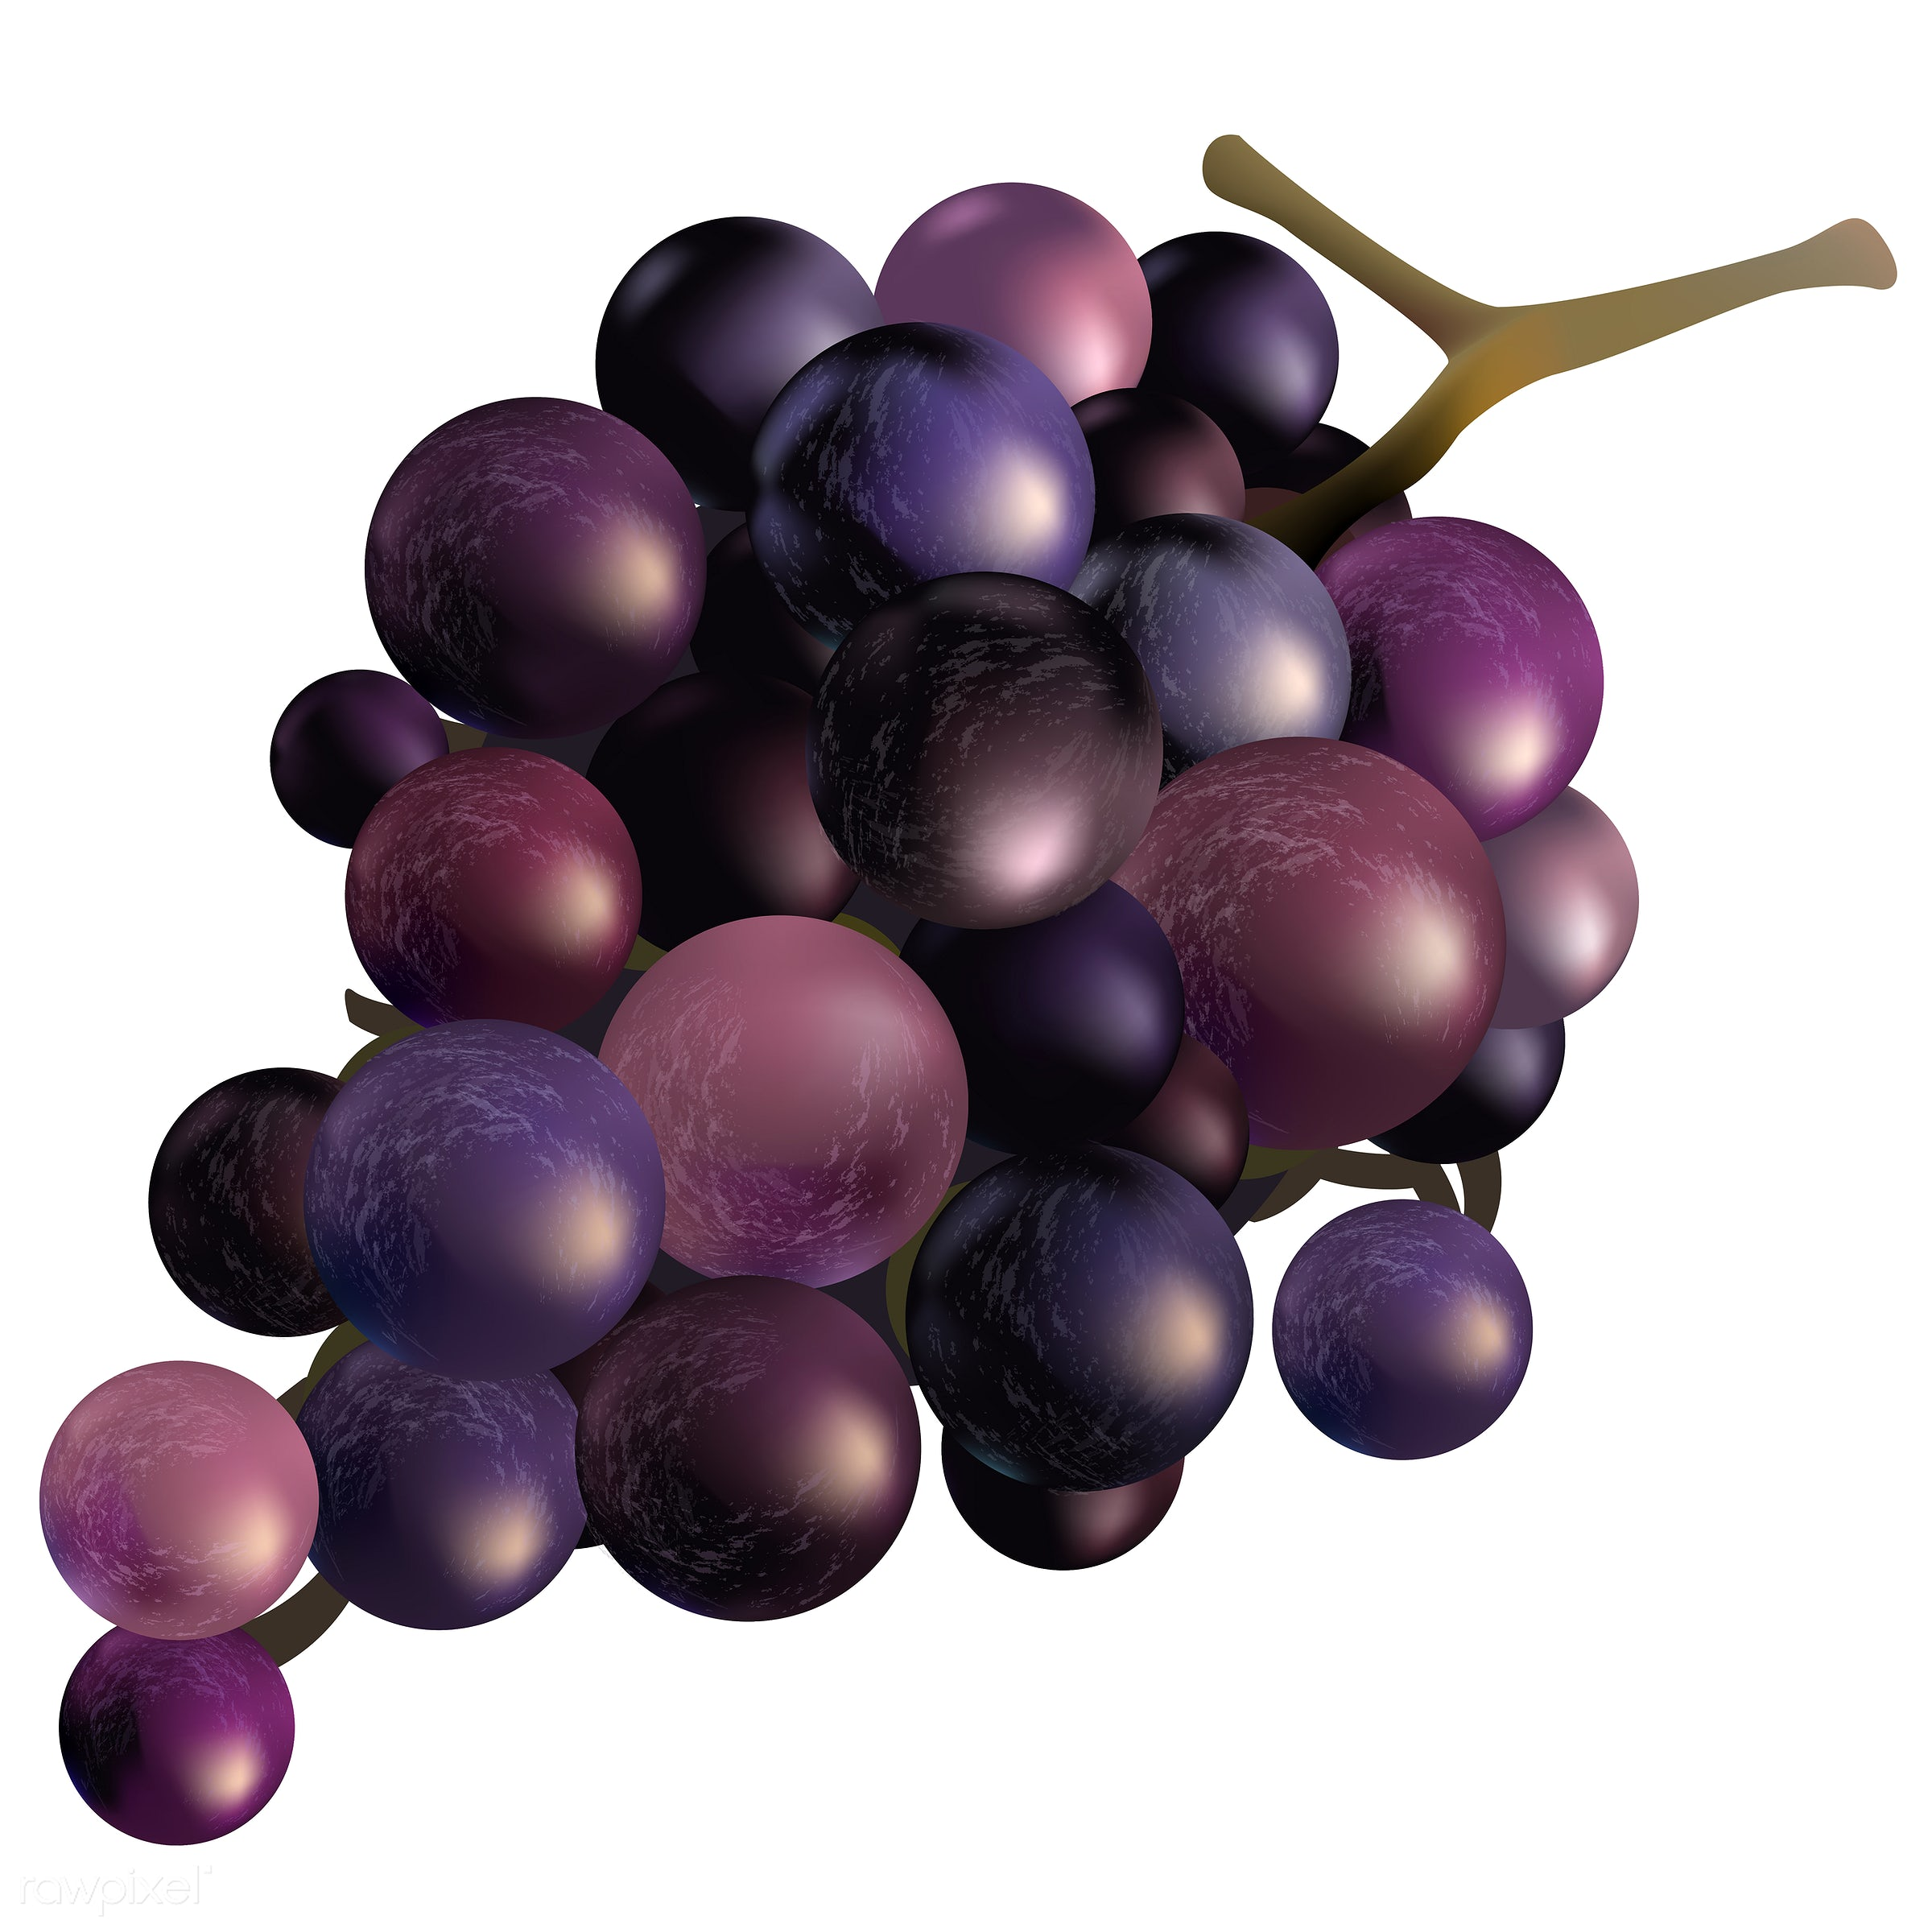 Illustration of grapes isolated on white background - fruit, autumn, celebration, crops, elements, fall, festival, grapes,...